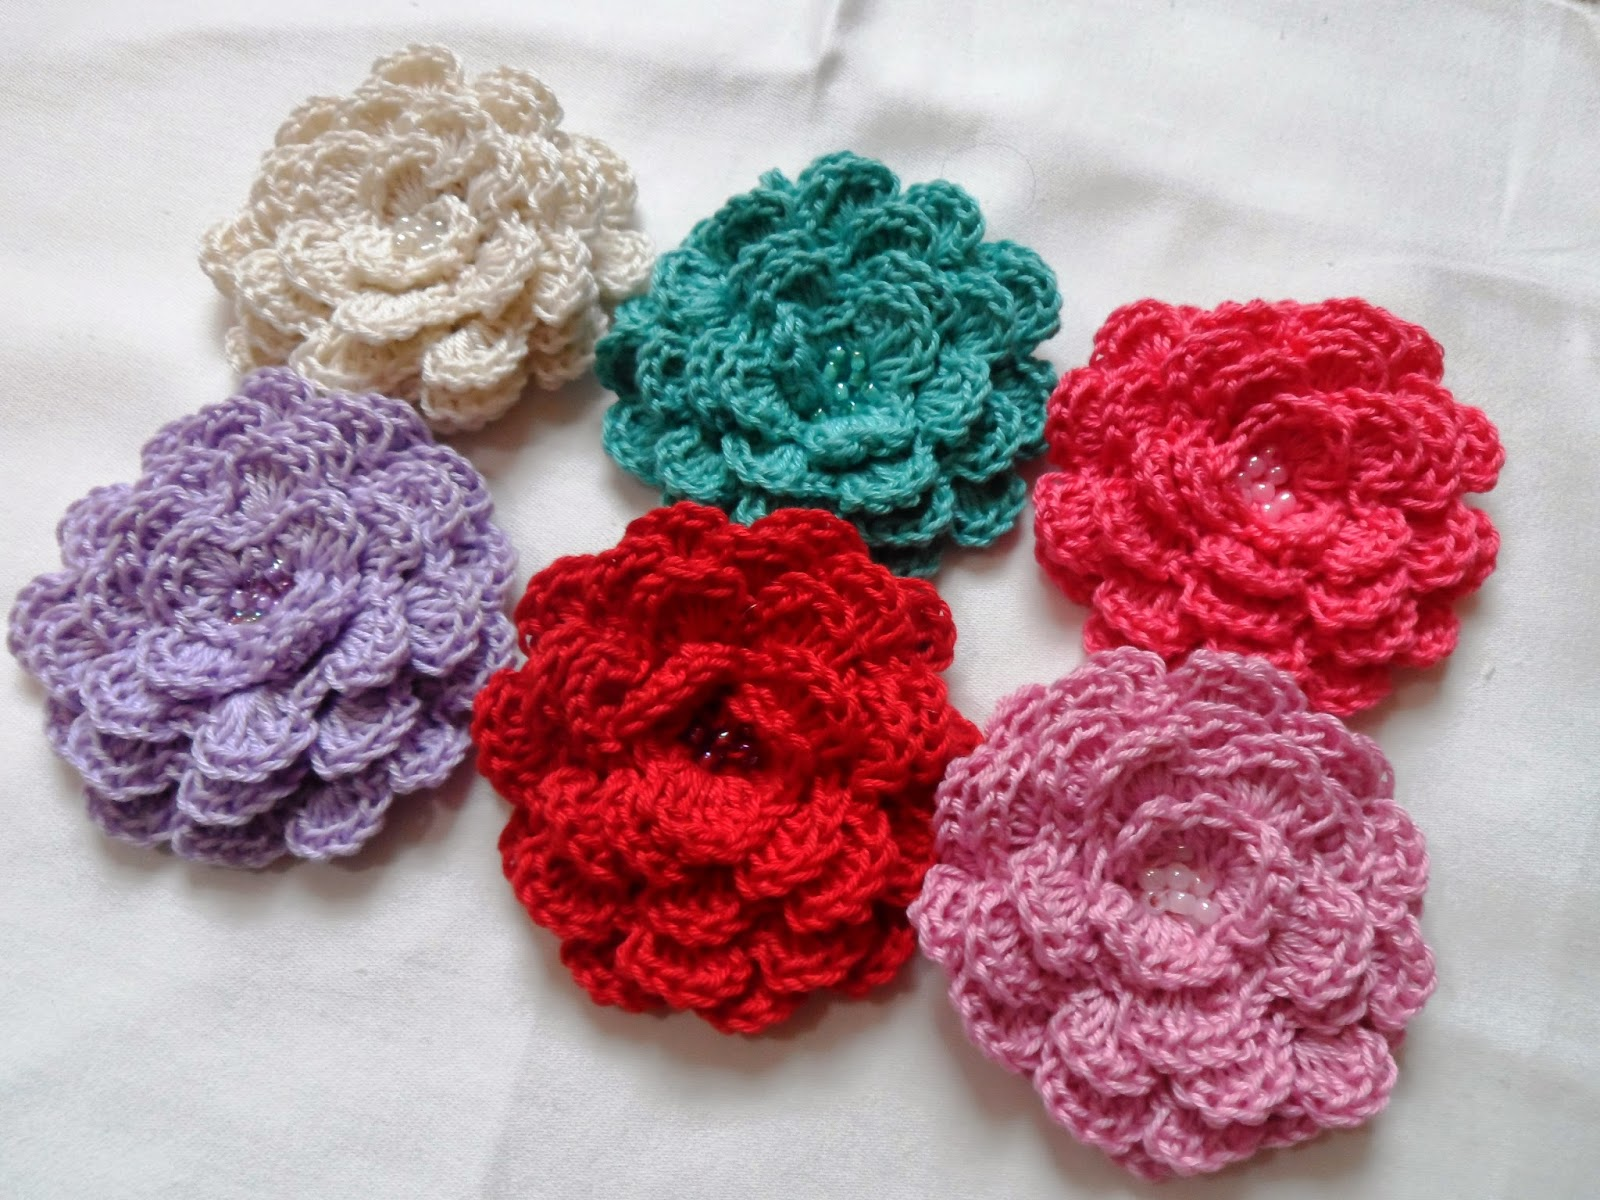 Crochet Patterns For Mother s Day : Farmhouse Traditions: Mothers Day crochet flowers